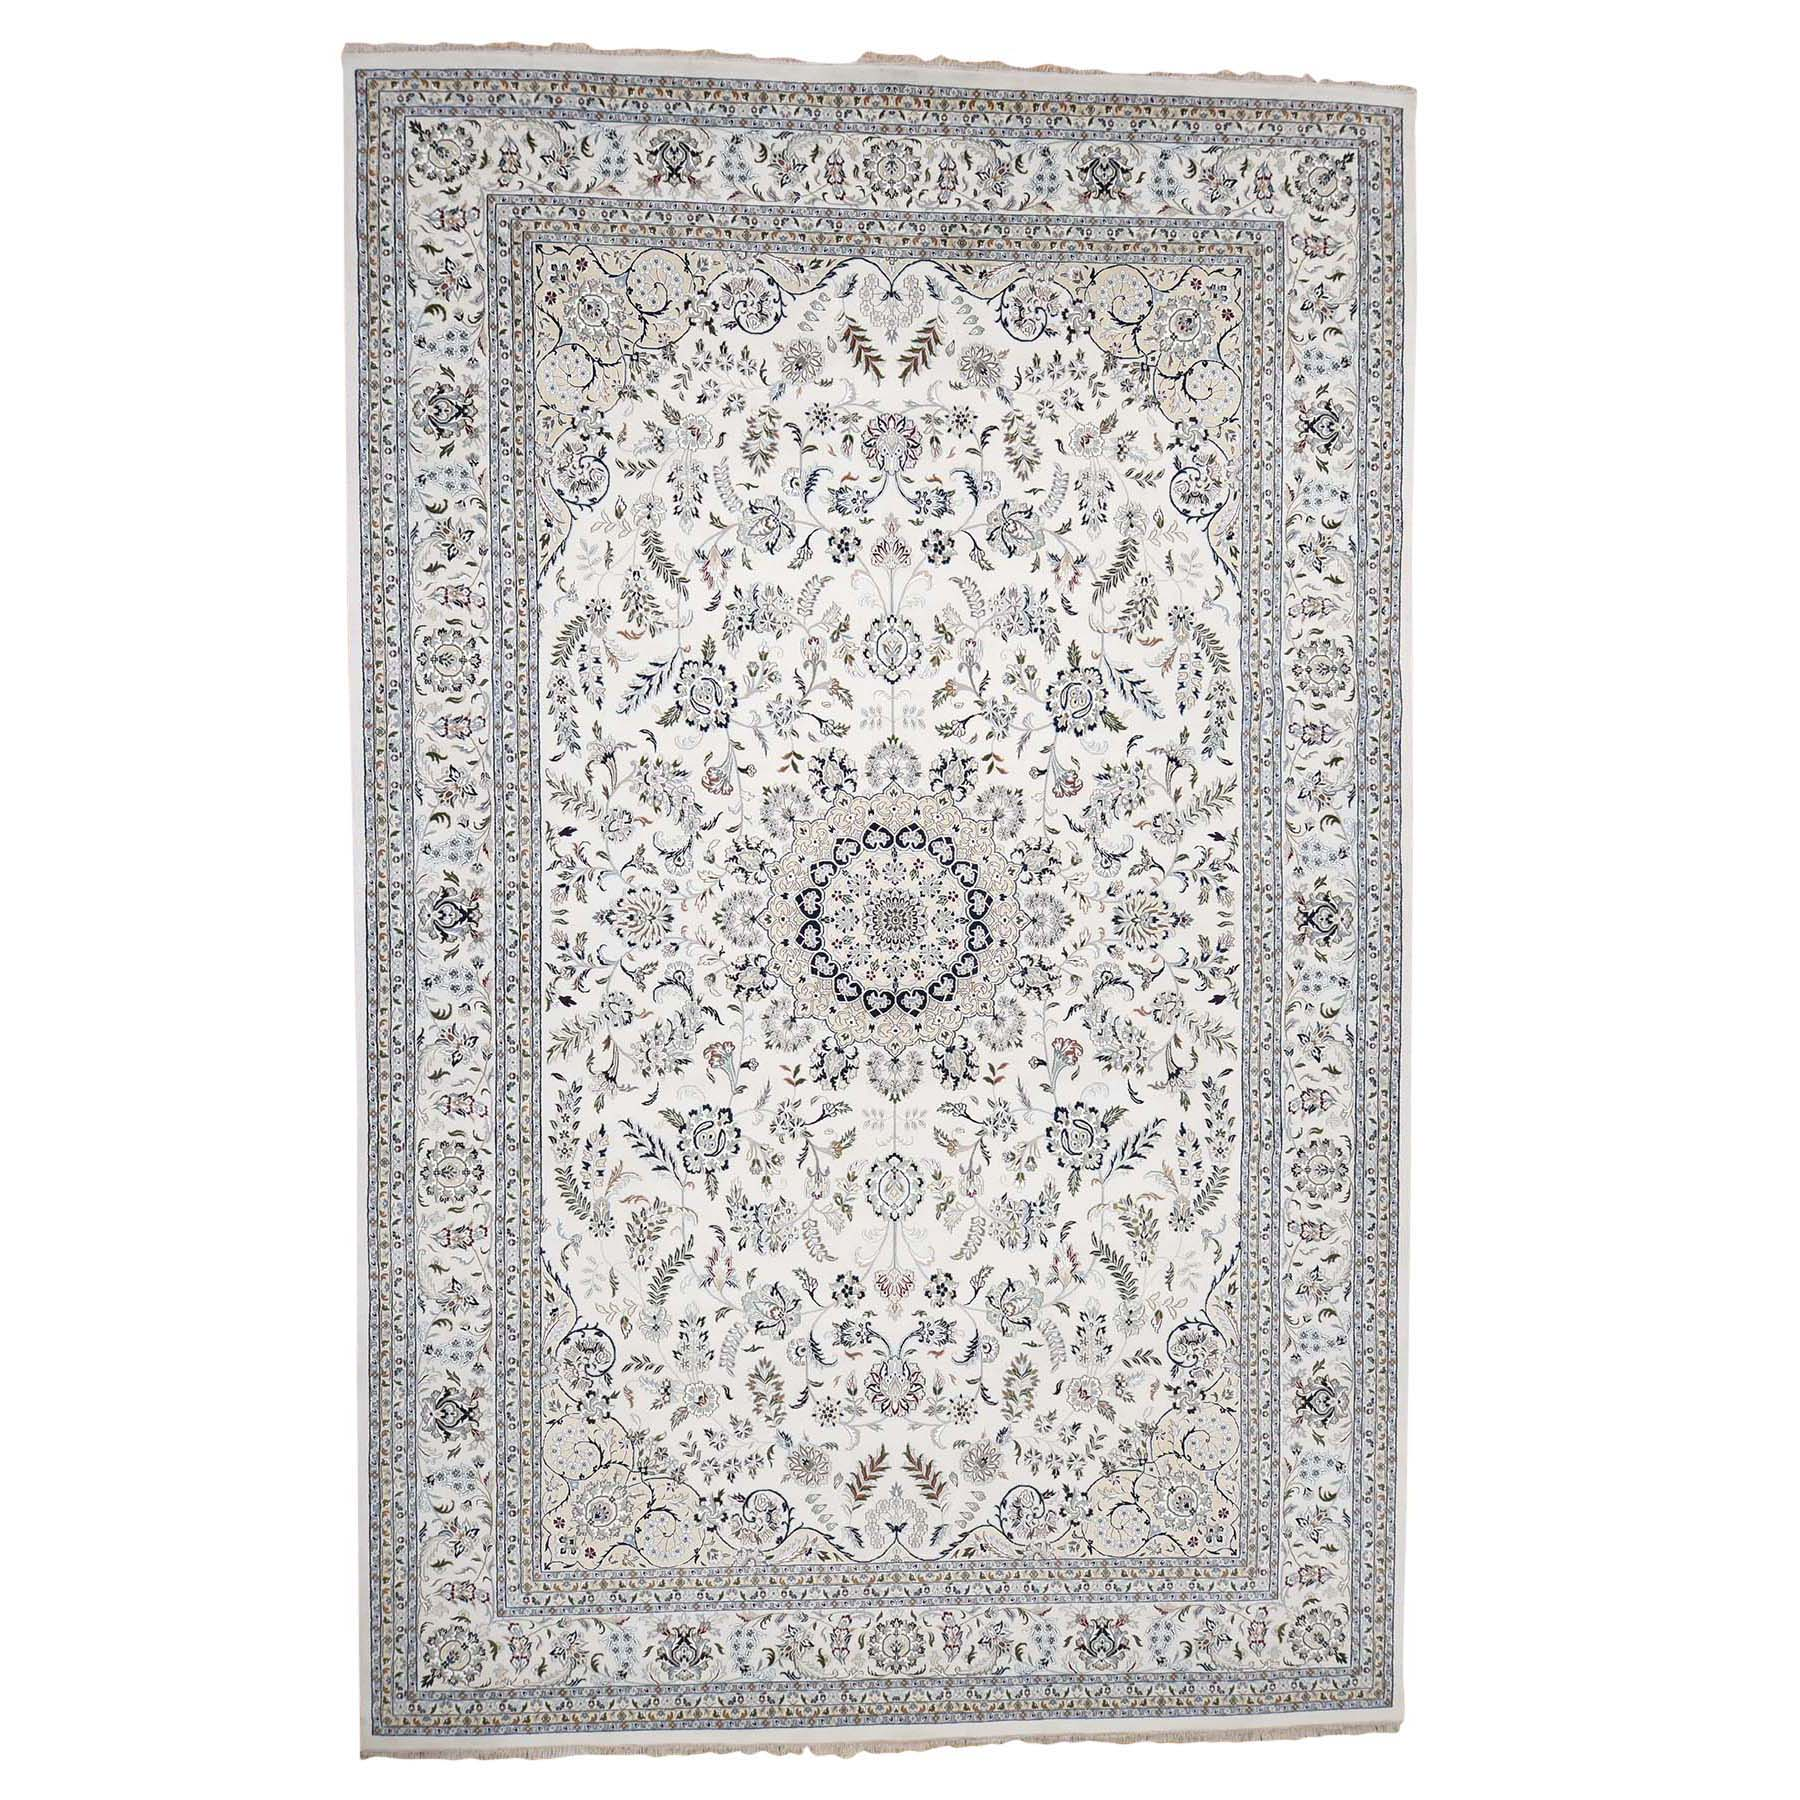 Pirniakan Collection Hand Knotted Ivory Rug No: 186518